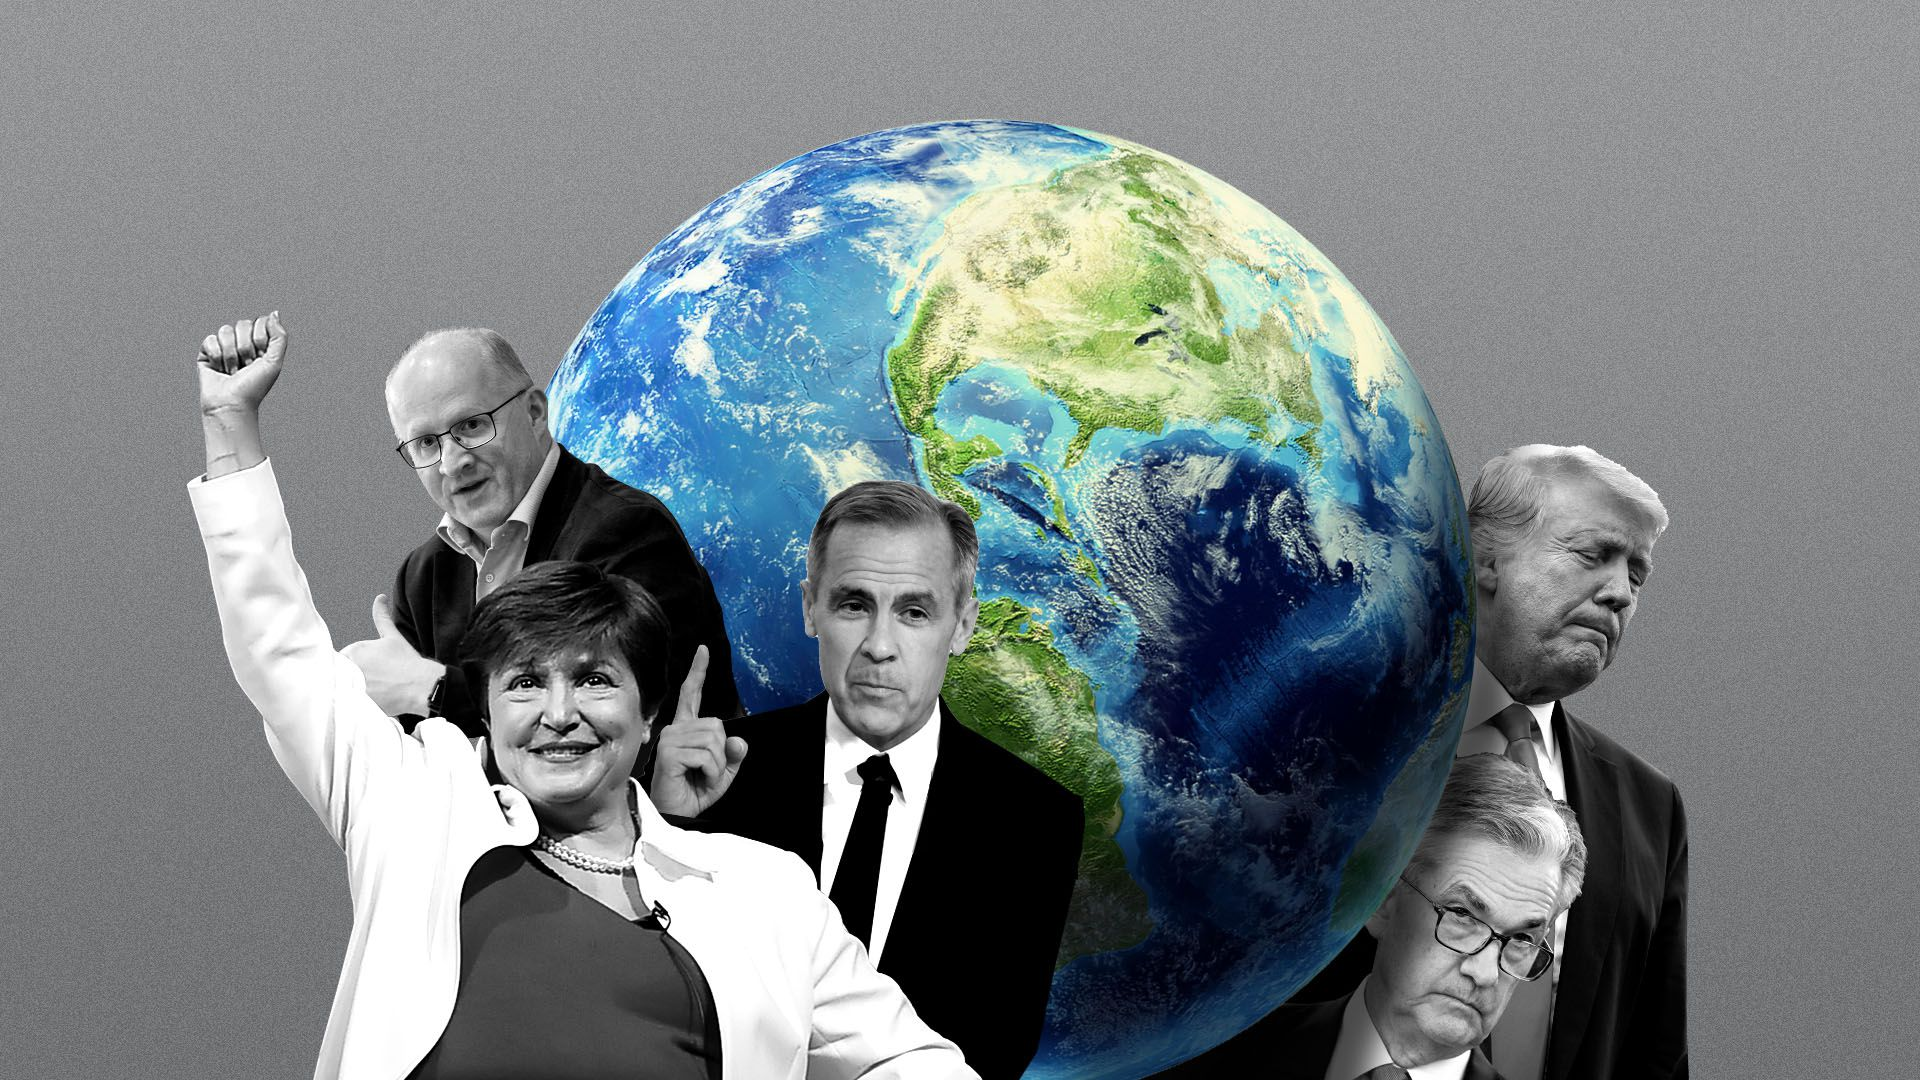 Photo illustration of a globe with President Trump and Jerome Powel on one side, and Kristalina Georgiewa, Philip Lane, and Mark Carney on the other.